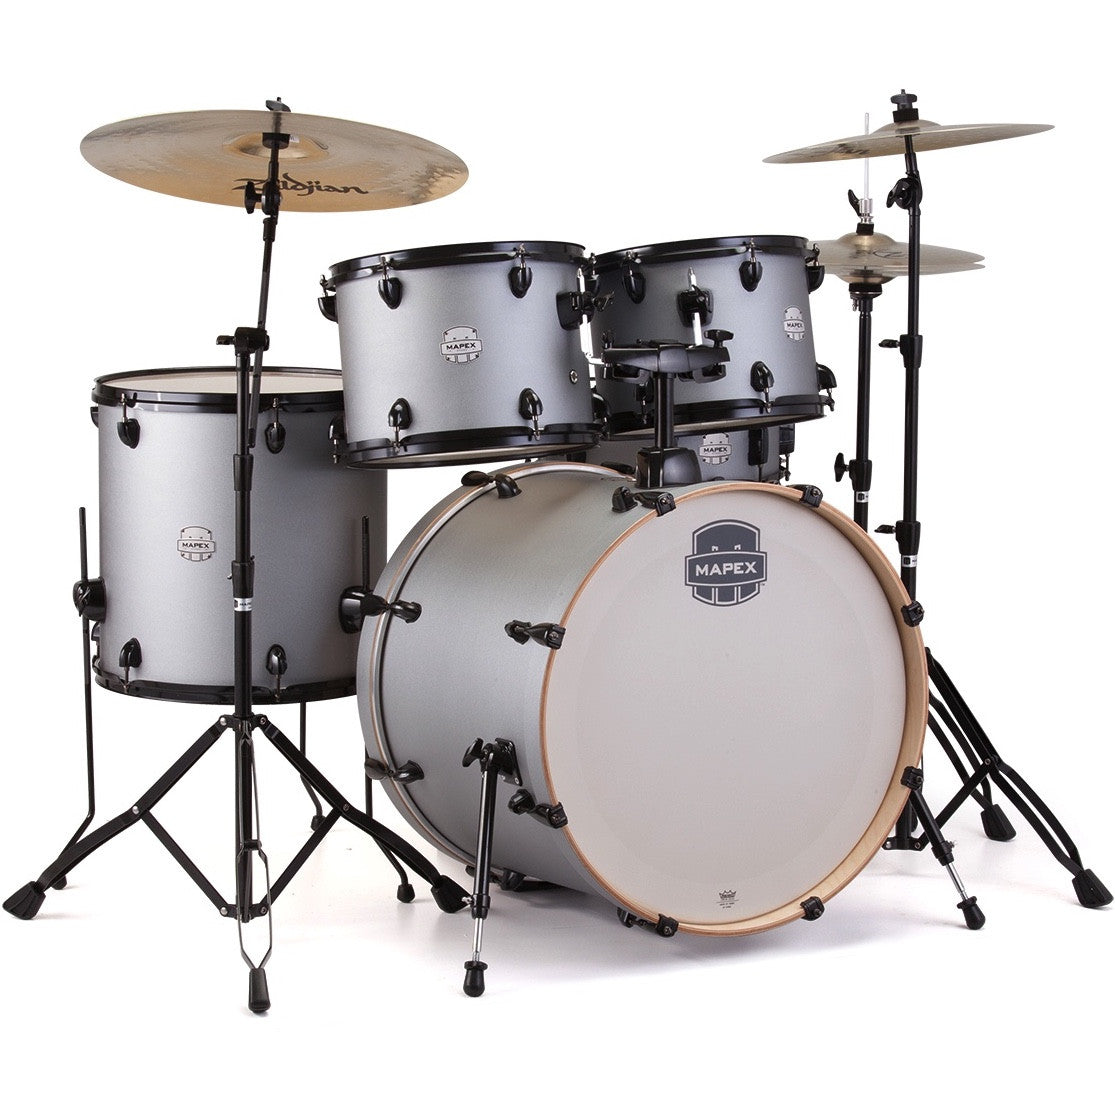 Mapex Storm 5-Piece Standard Drum Set - Iron Grey | Music Experience | Shop Online | South Africa